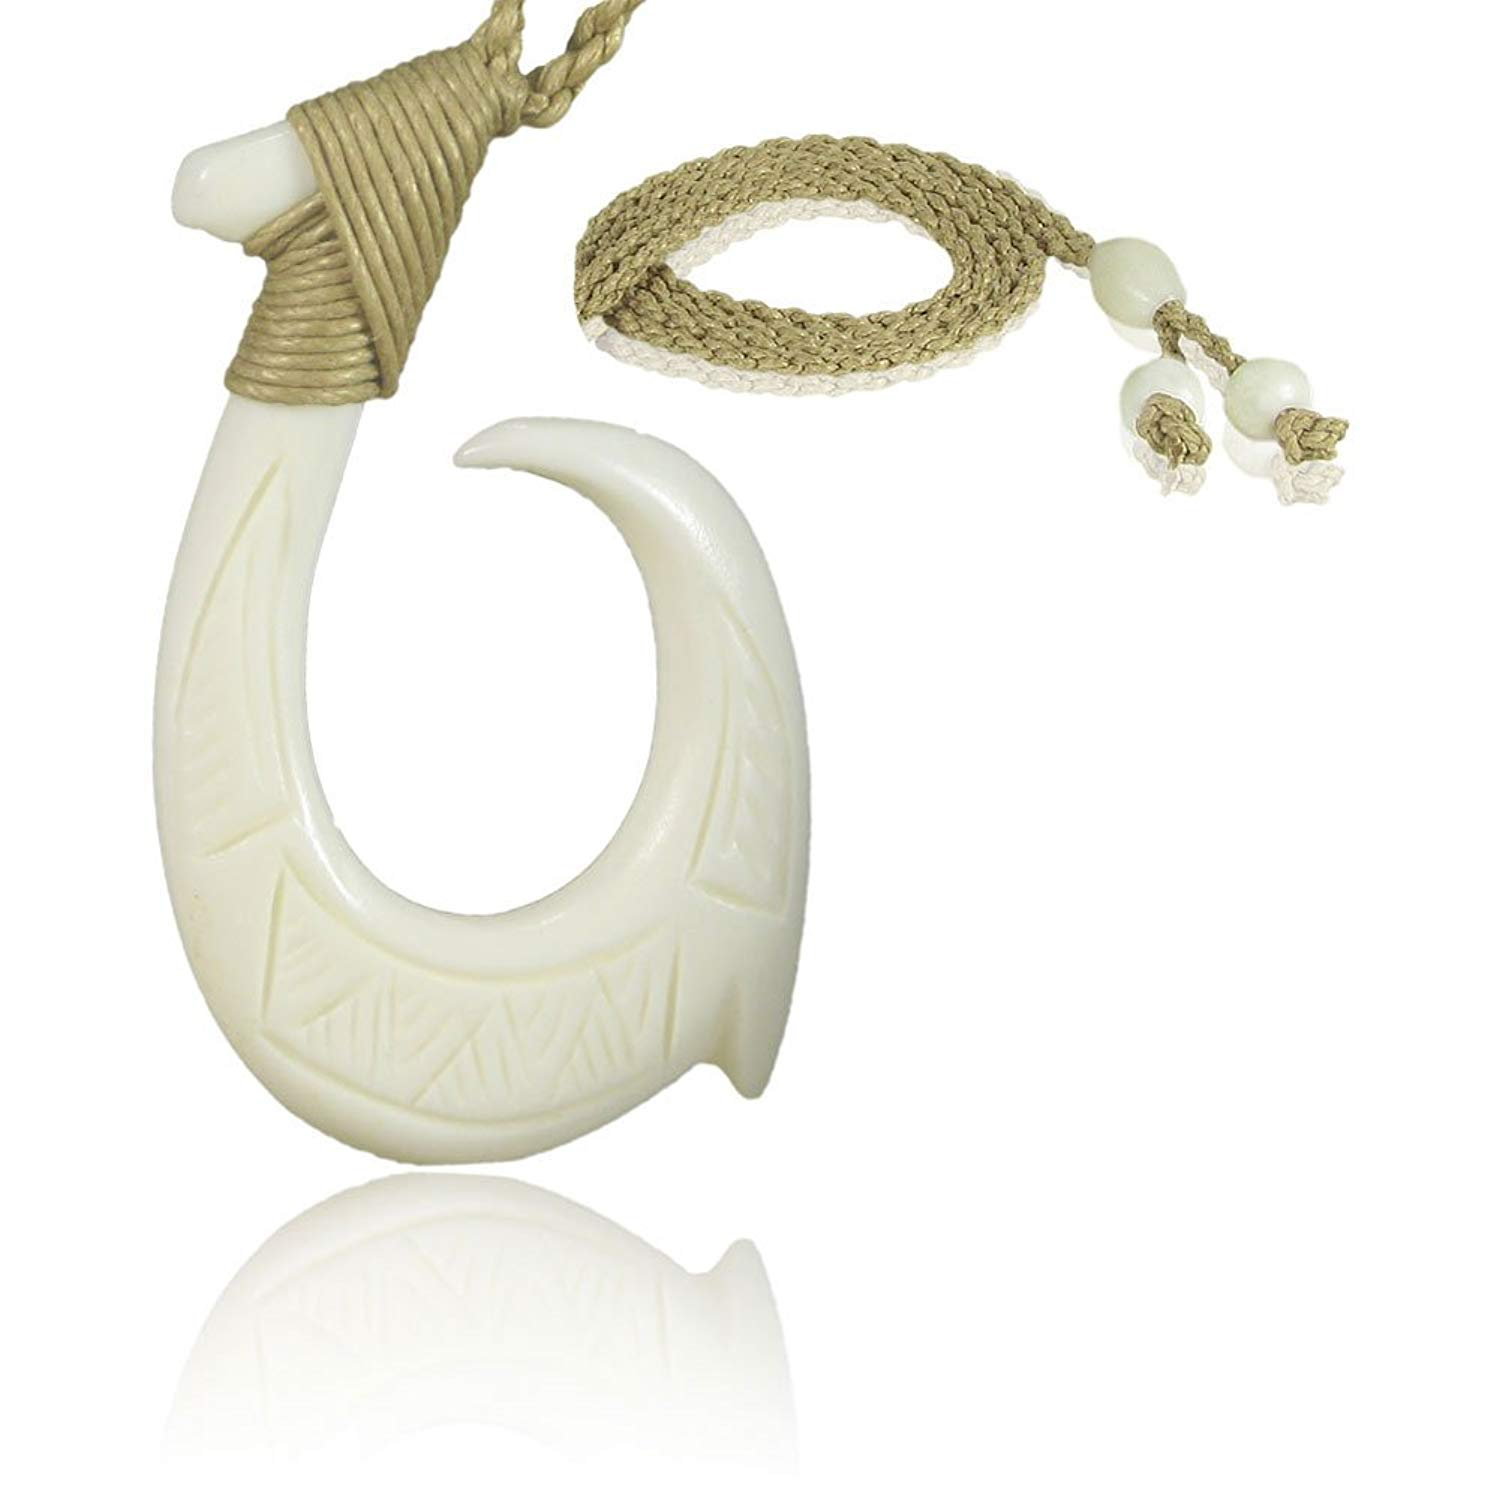 Cheap Jade Fish Hook Necklace Find Jade Fish Hook Necklace Deals On